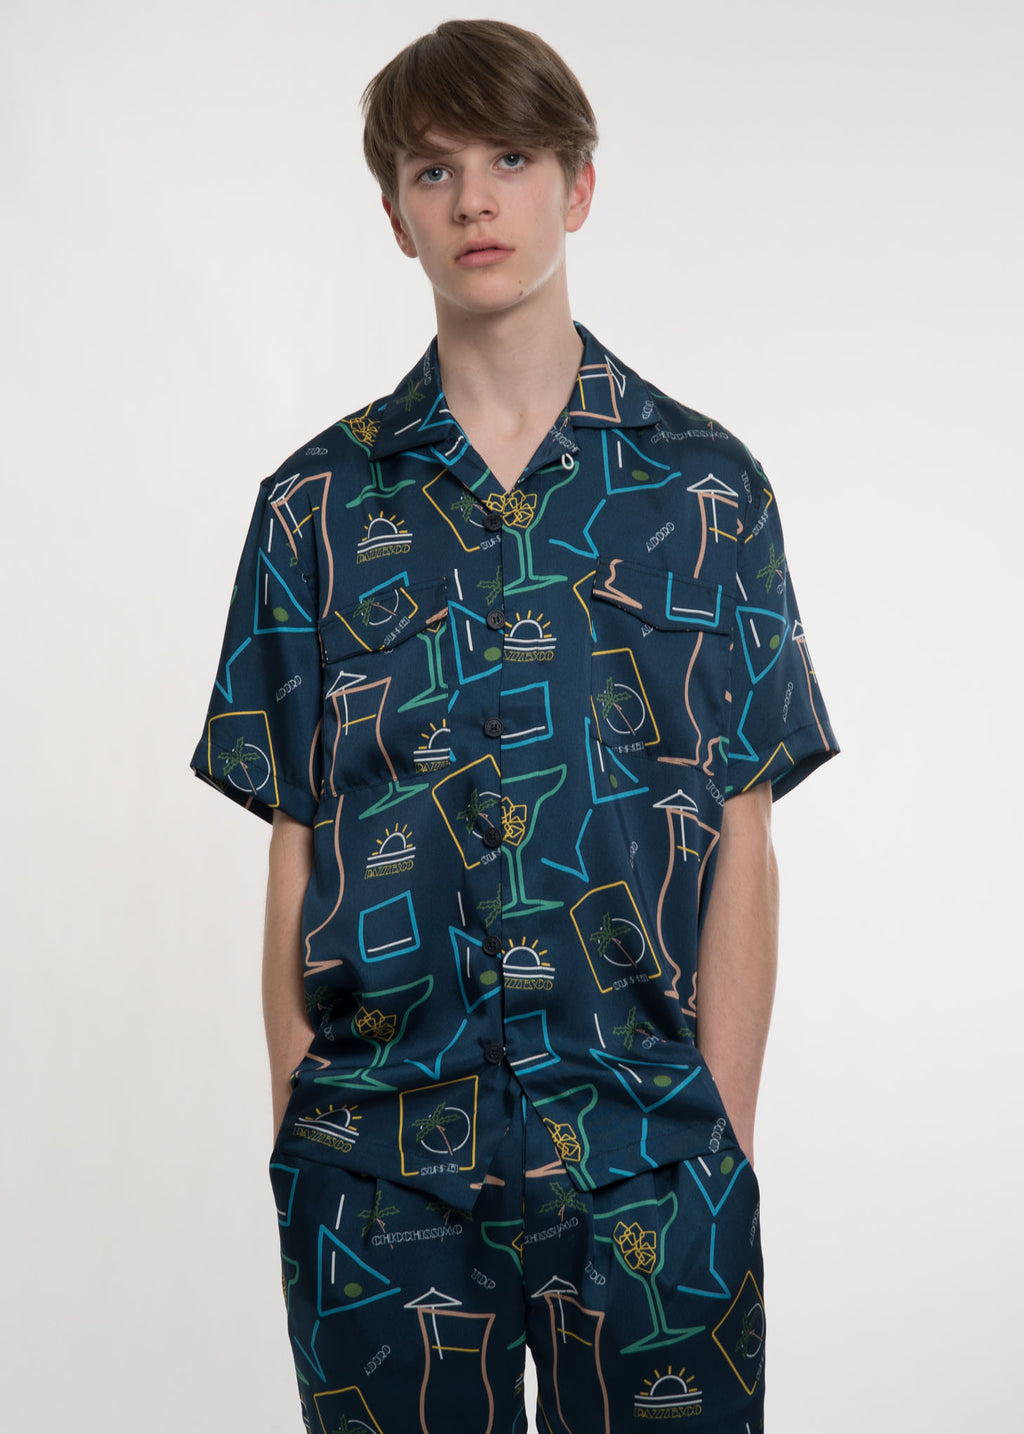 Blue Cocktail Hawaiian Shirt